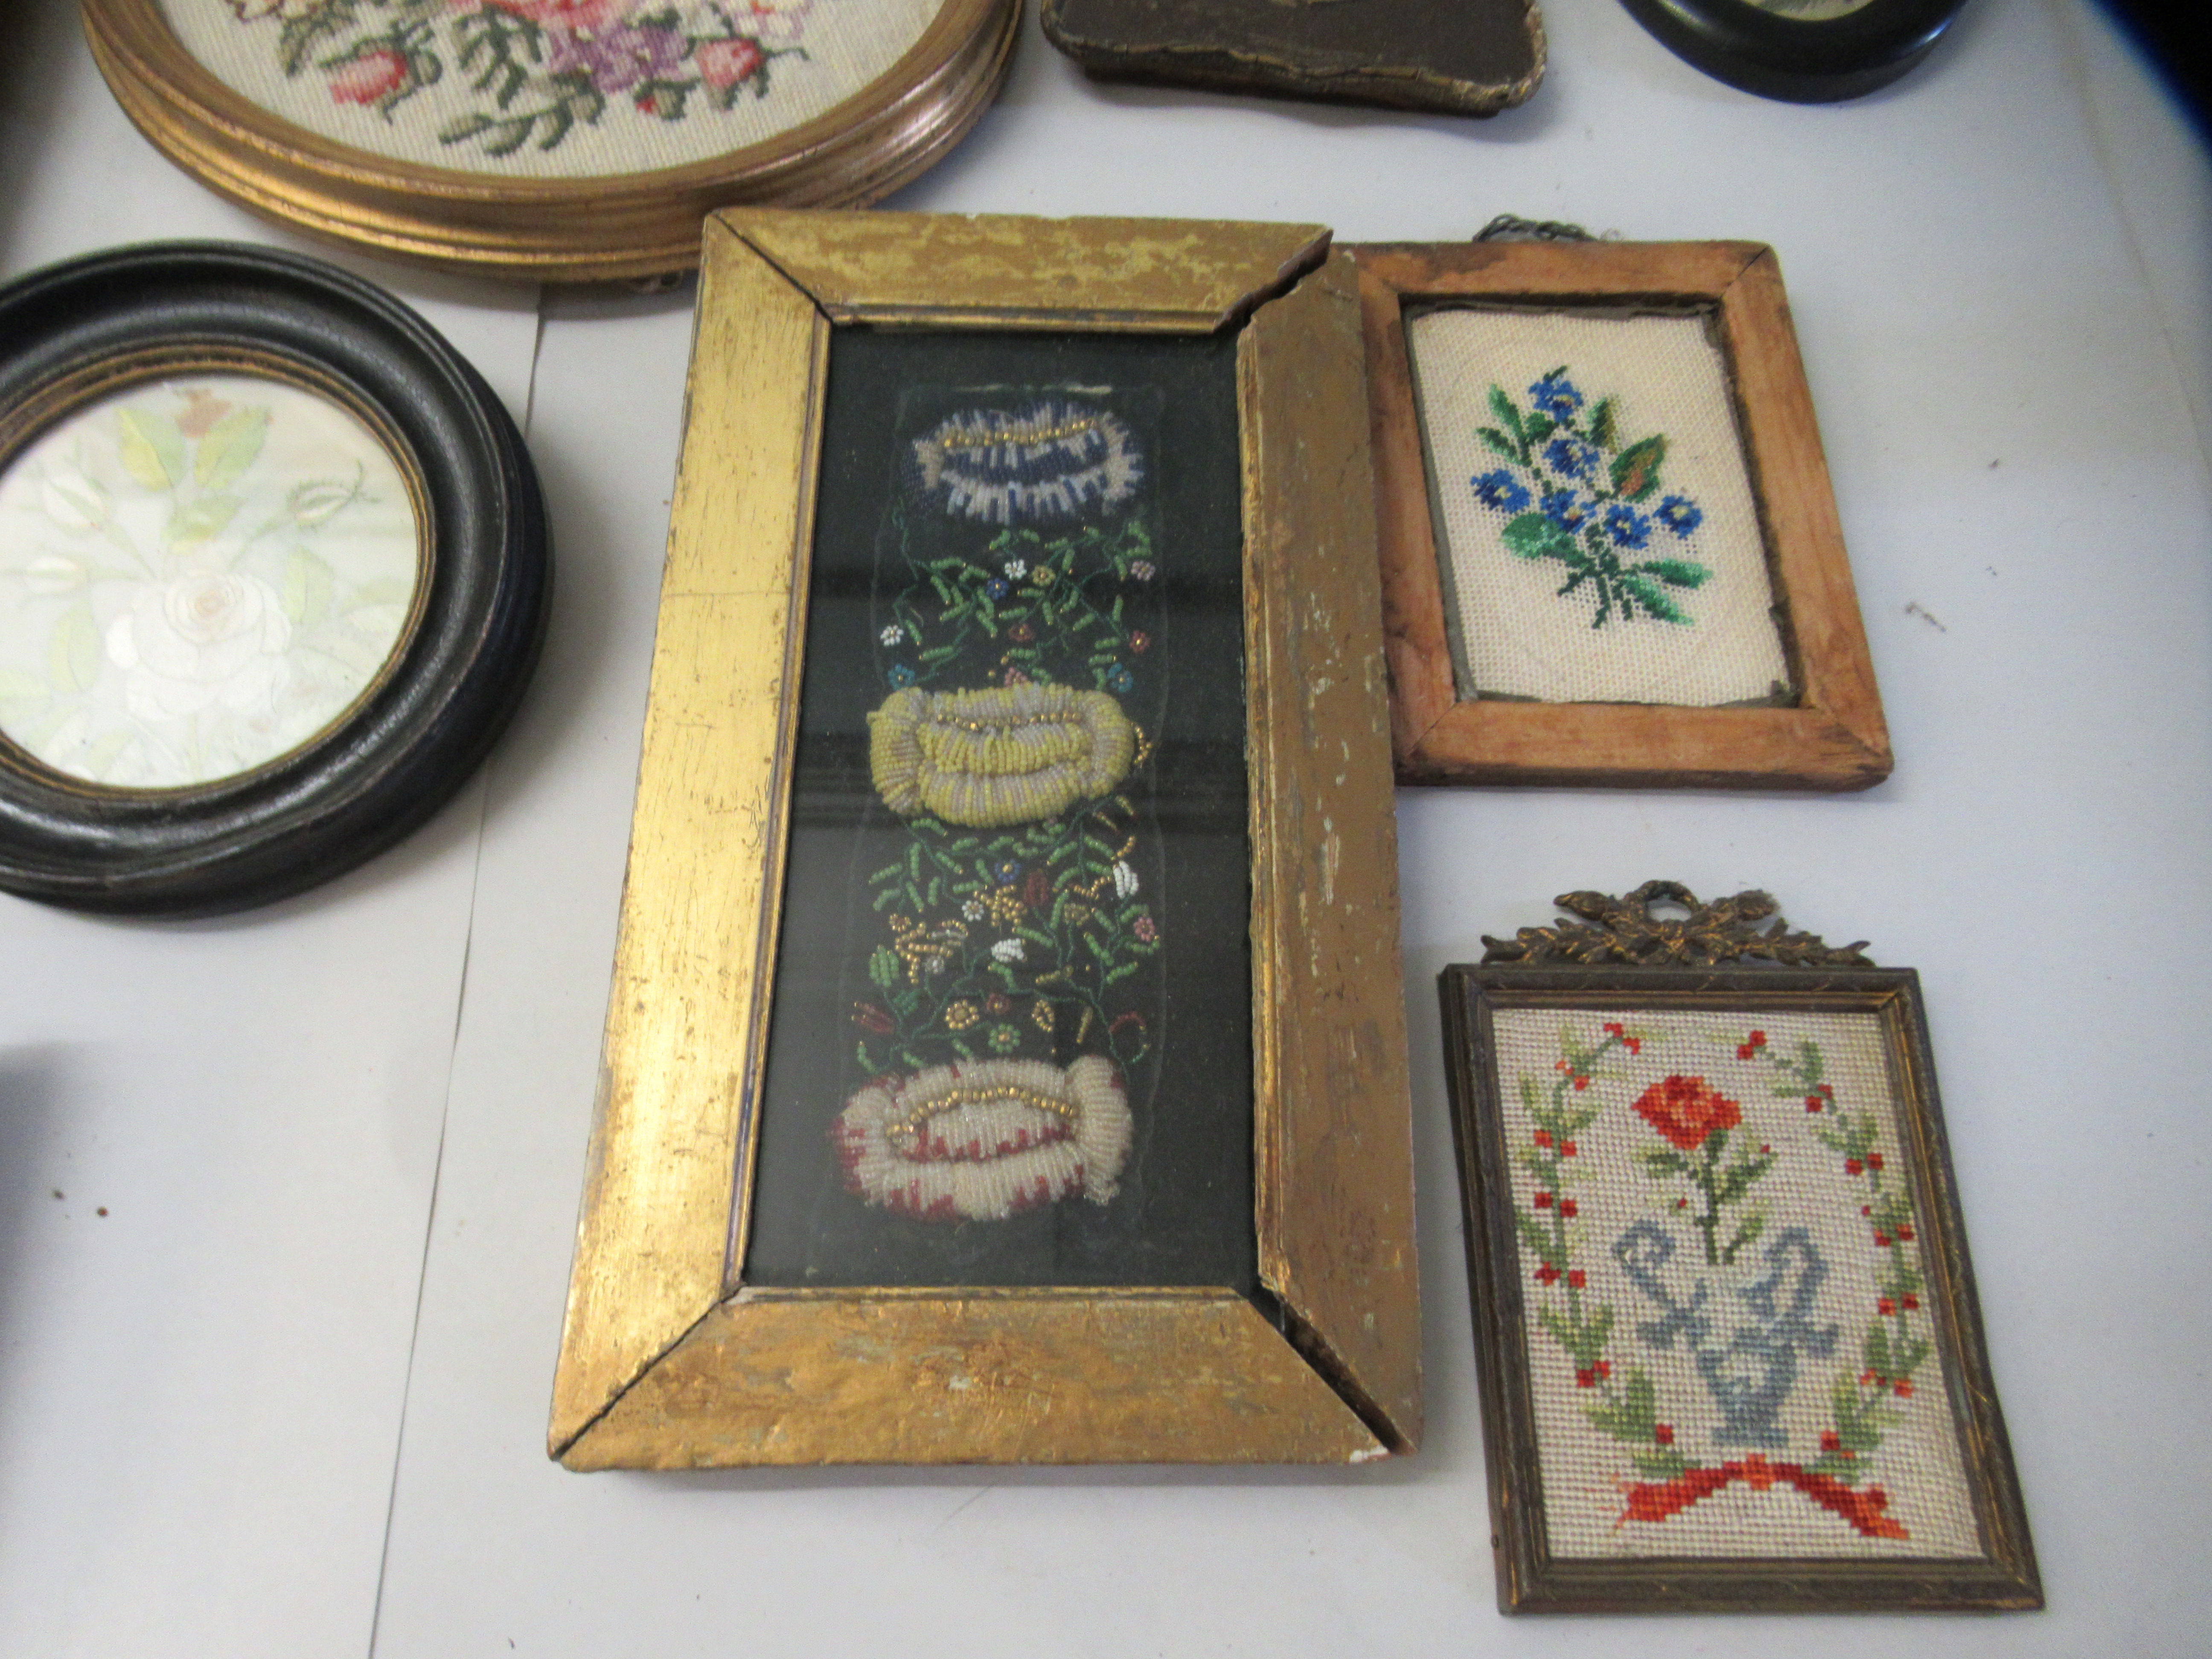 19th and 20thC embroidered tapestry panels various designs & sizes framed - Image 6 of 7